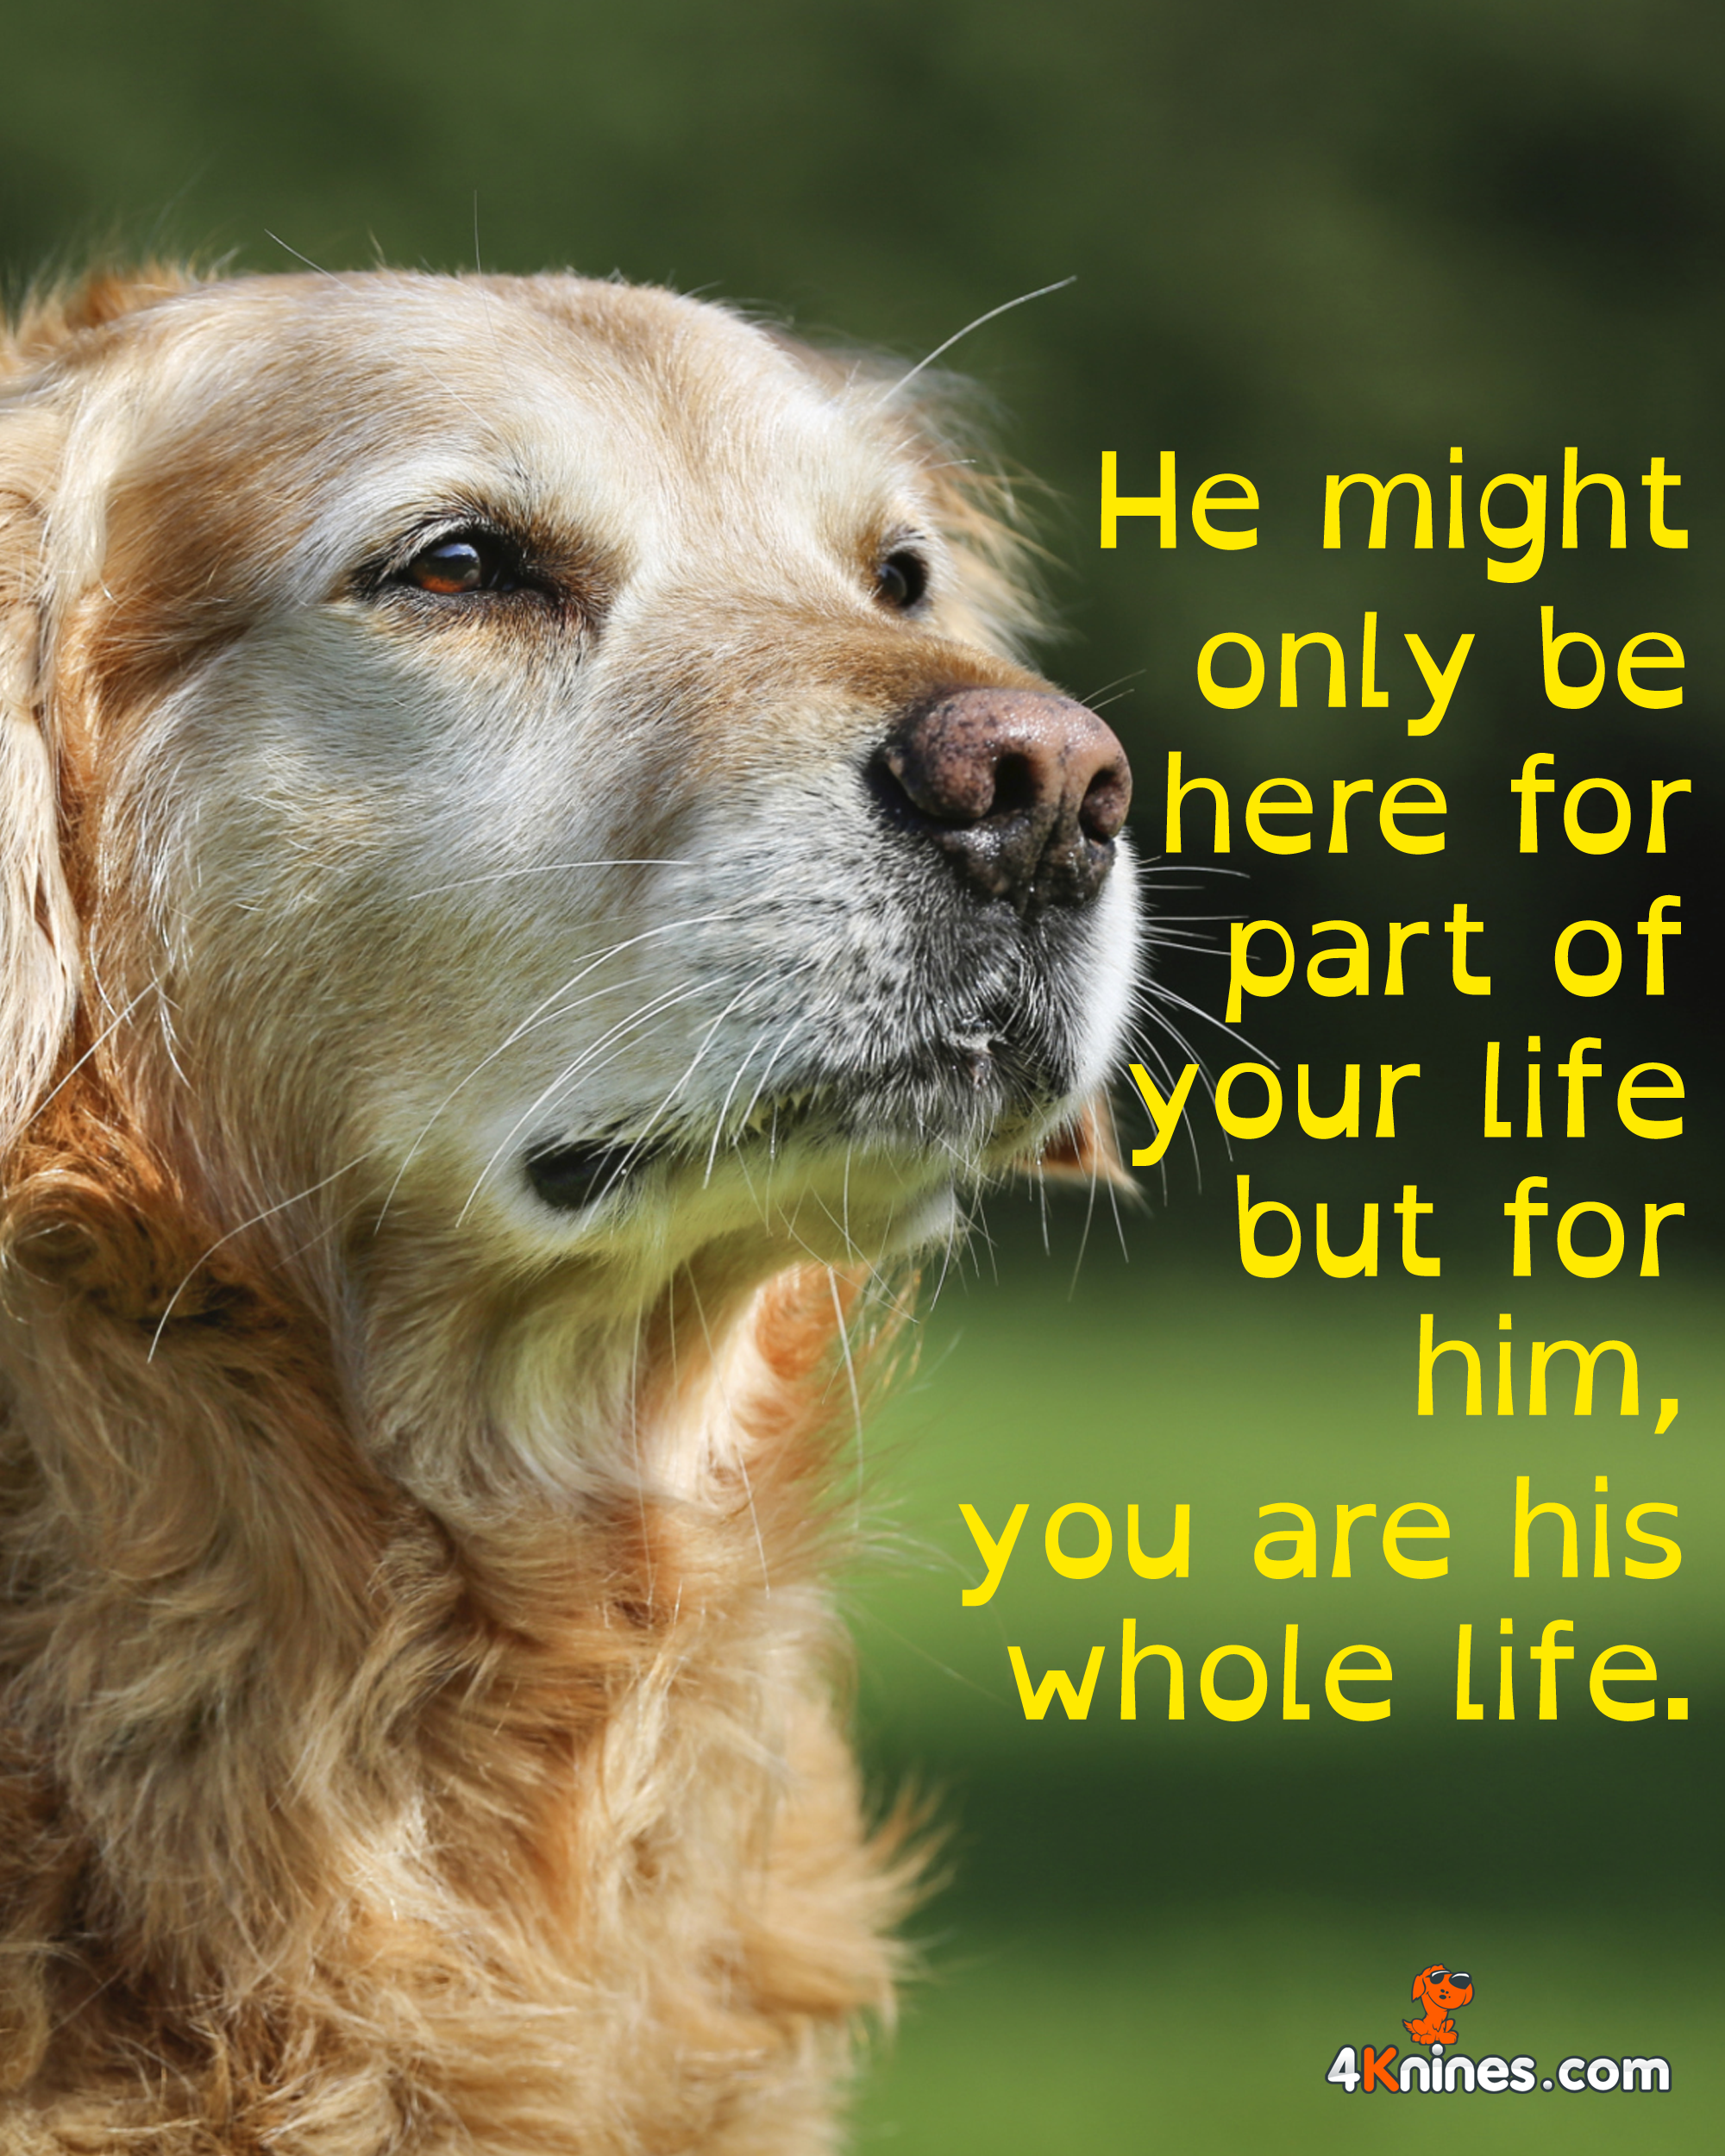 For your dog, you are his whole life. 4Knines